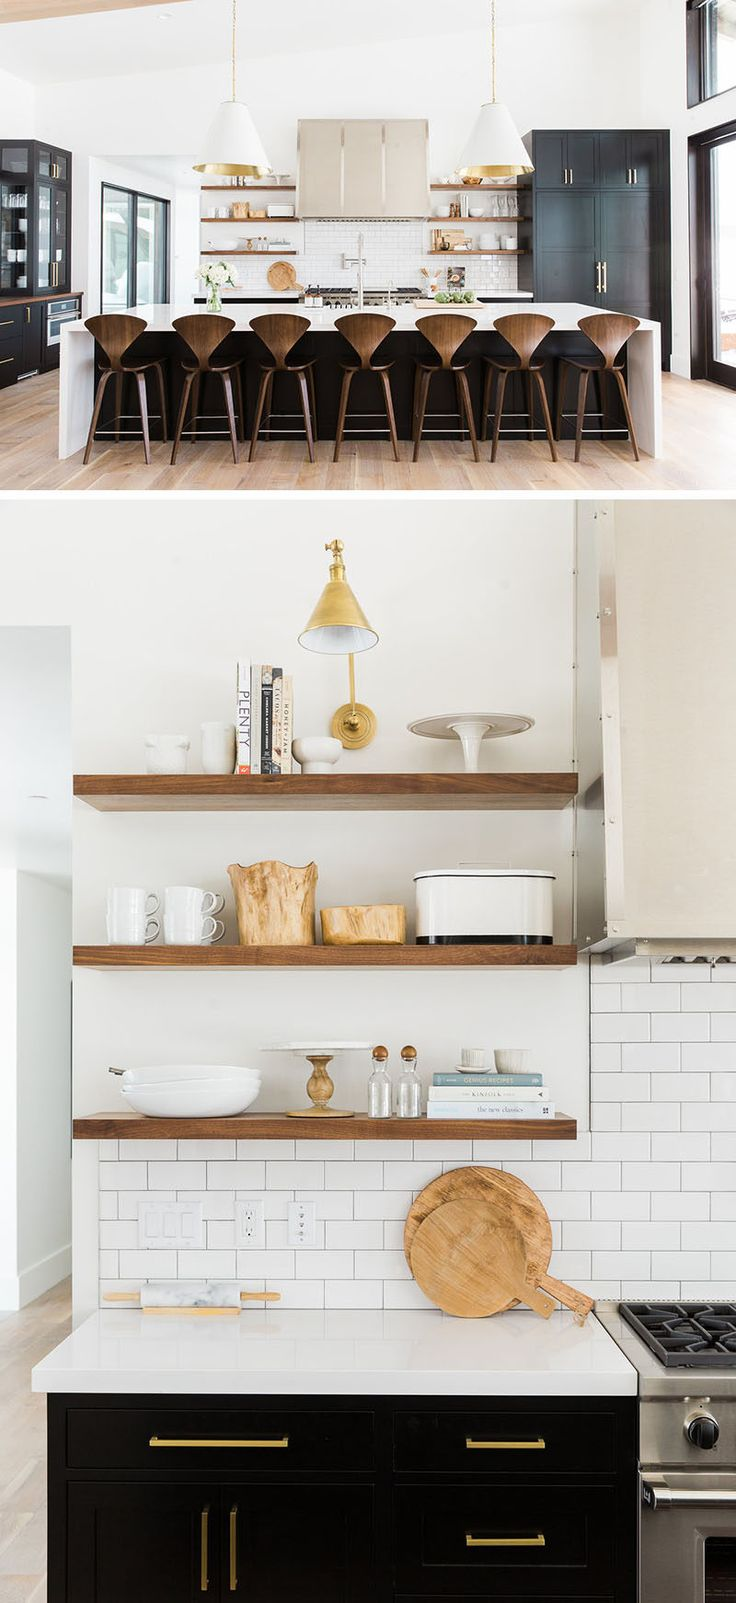 17 best ideas about open shelving in kitchen on pinterest | open